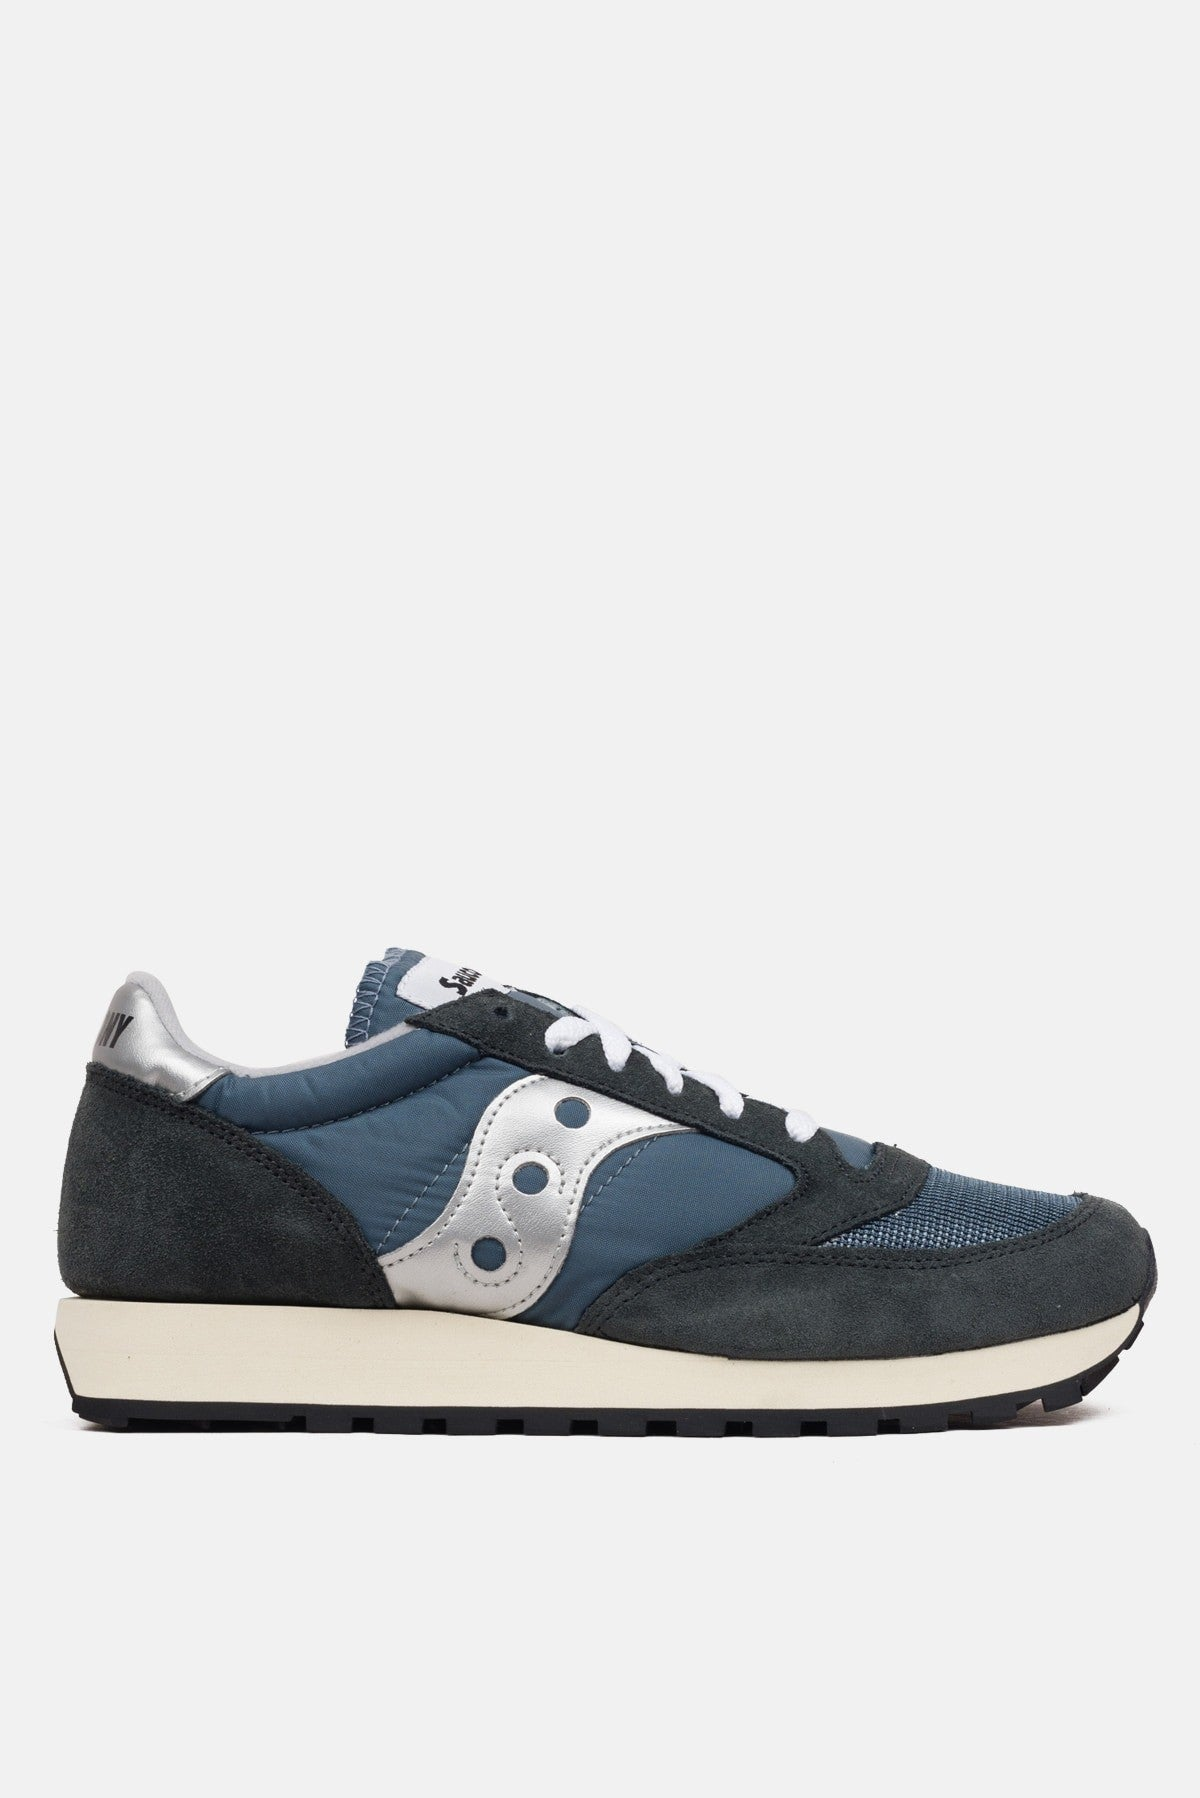 8645a952 Saucony Jazz Original Vintage Shoes available from Priory